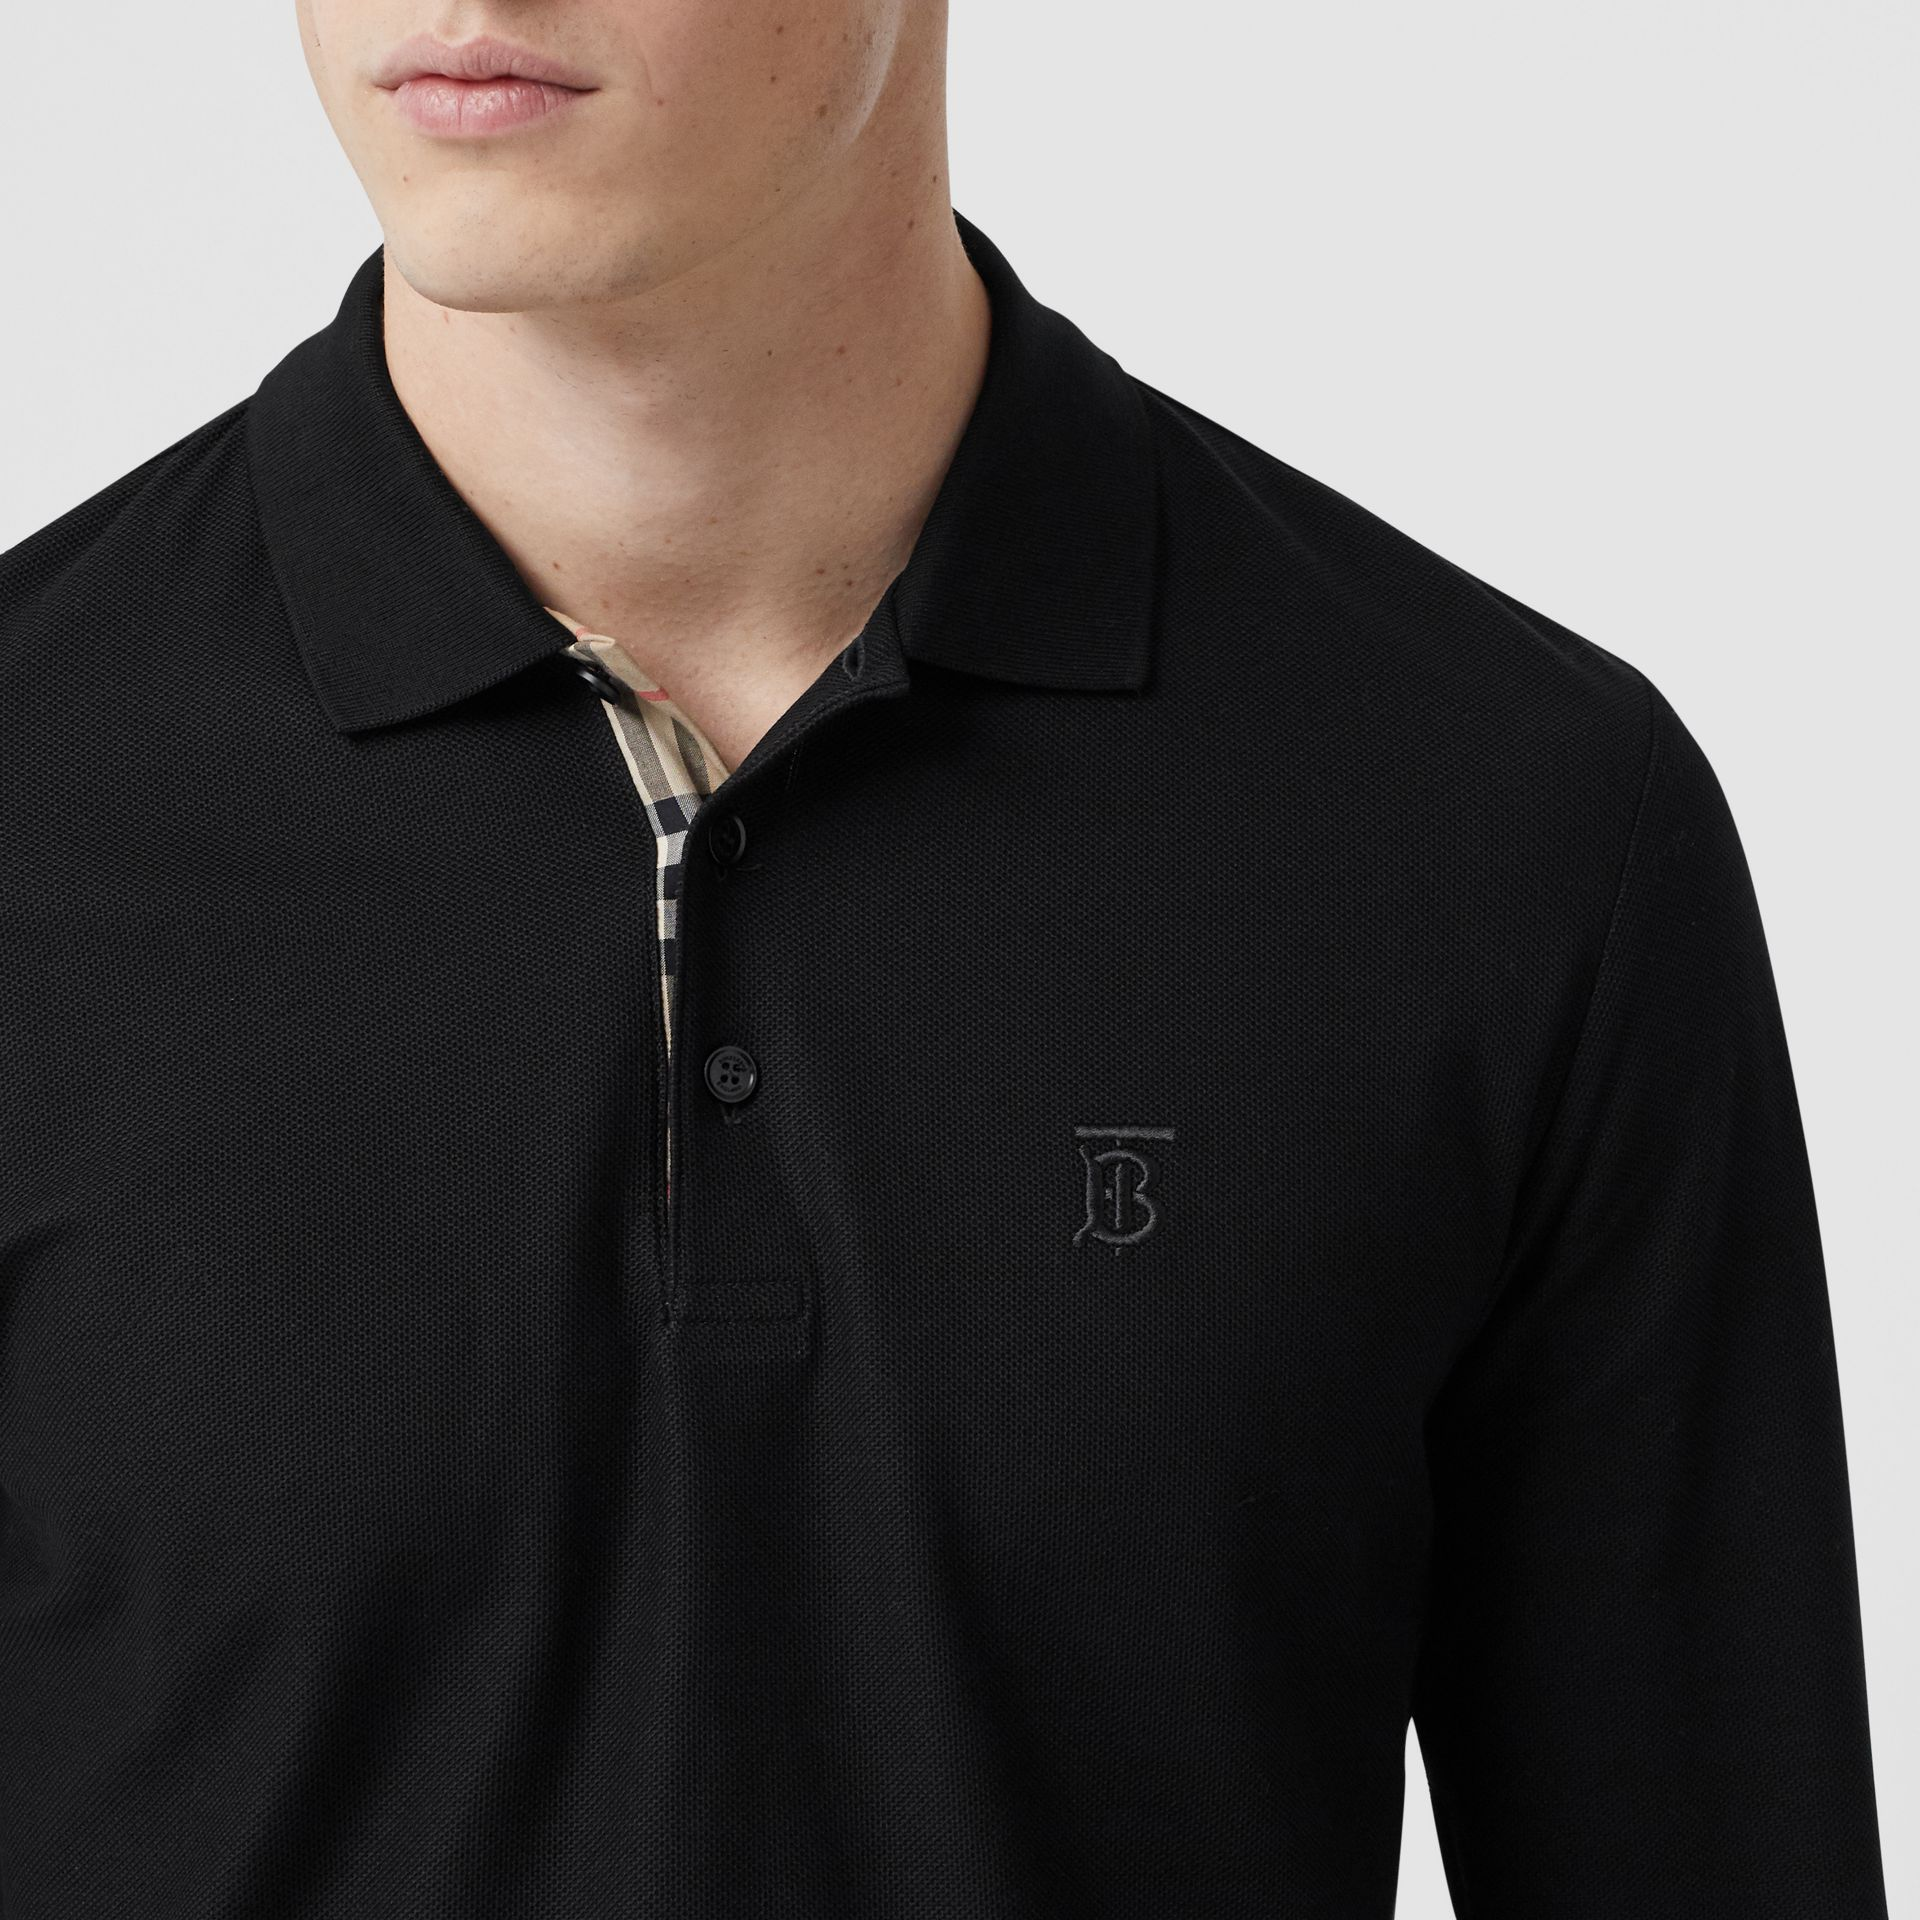 Long-sleeve Monogram Motif Cotton Piqué Polo Shirt in Black - Men | Burberry - gallery image 1